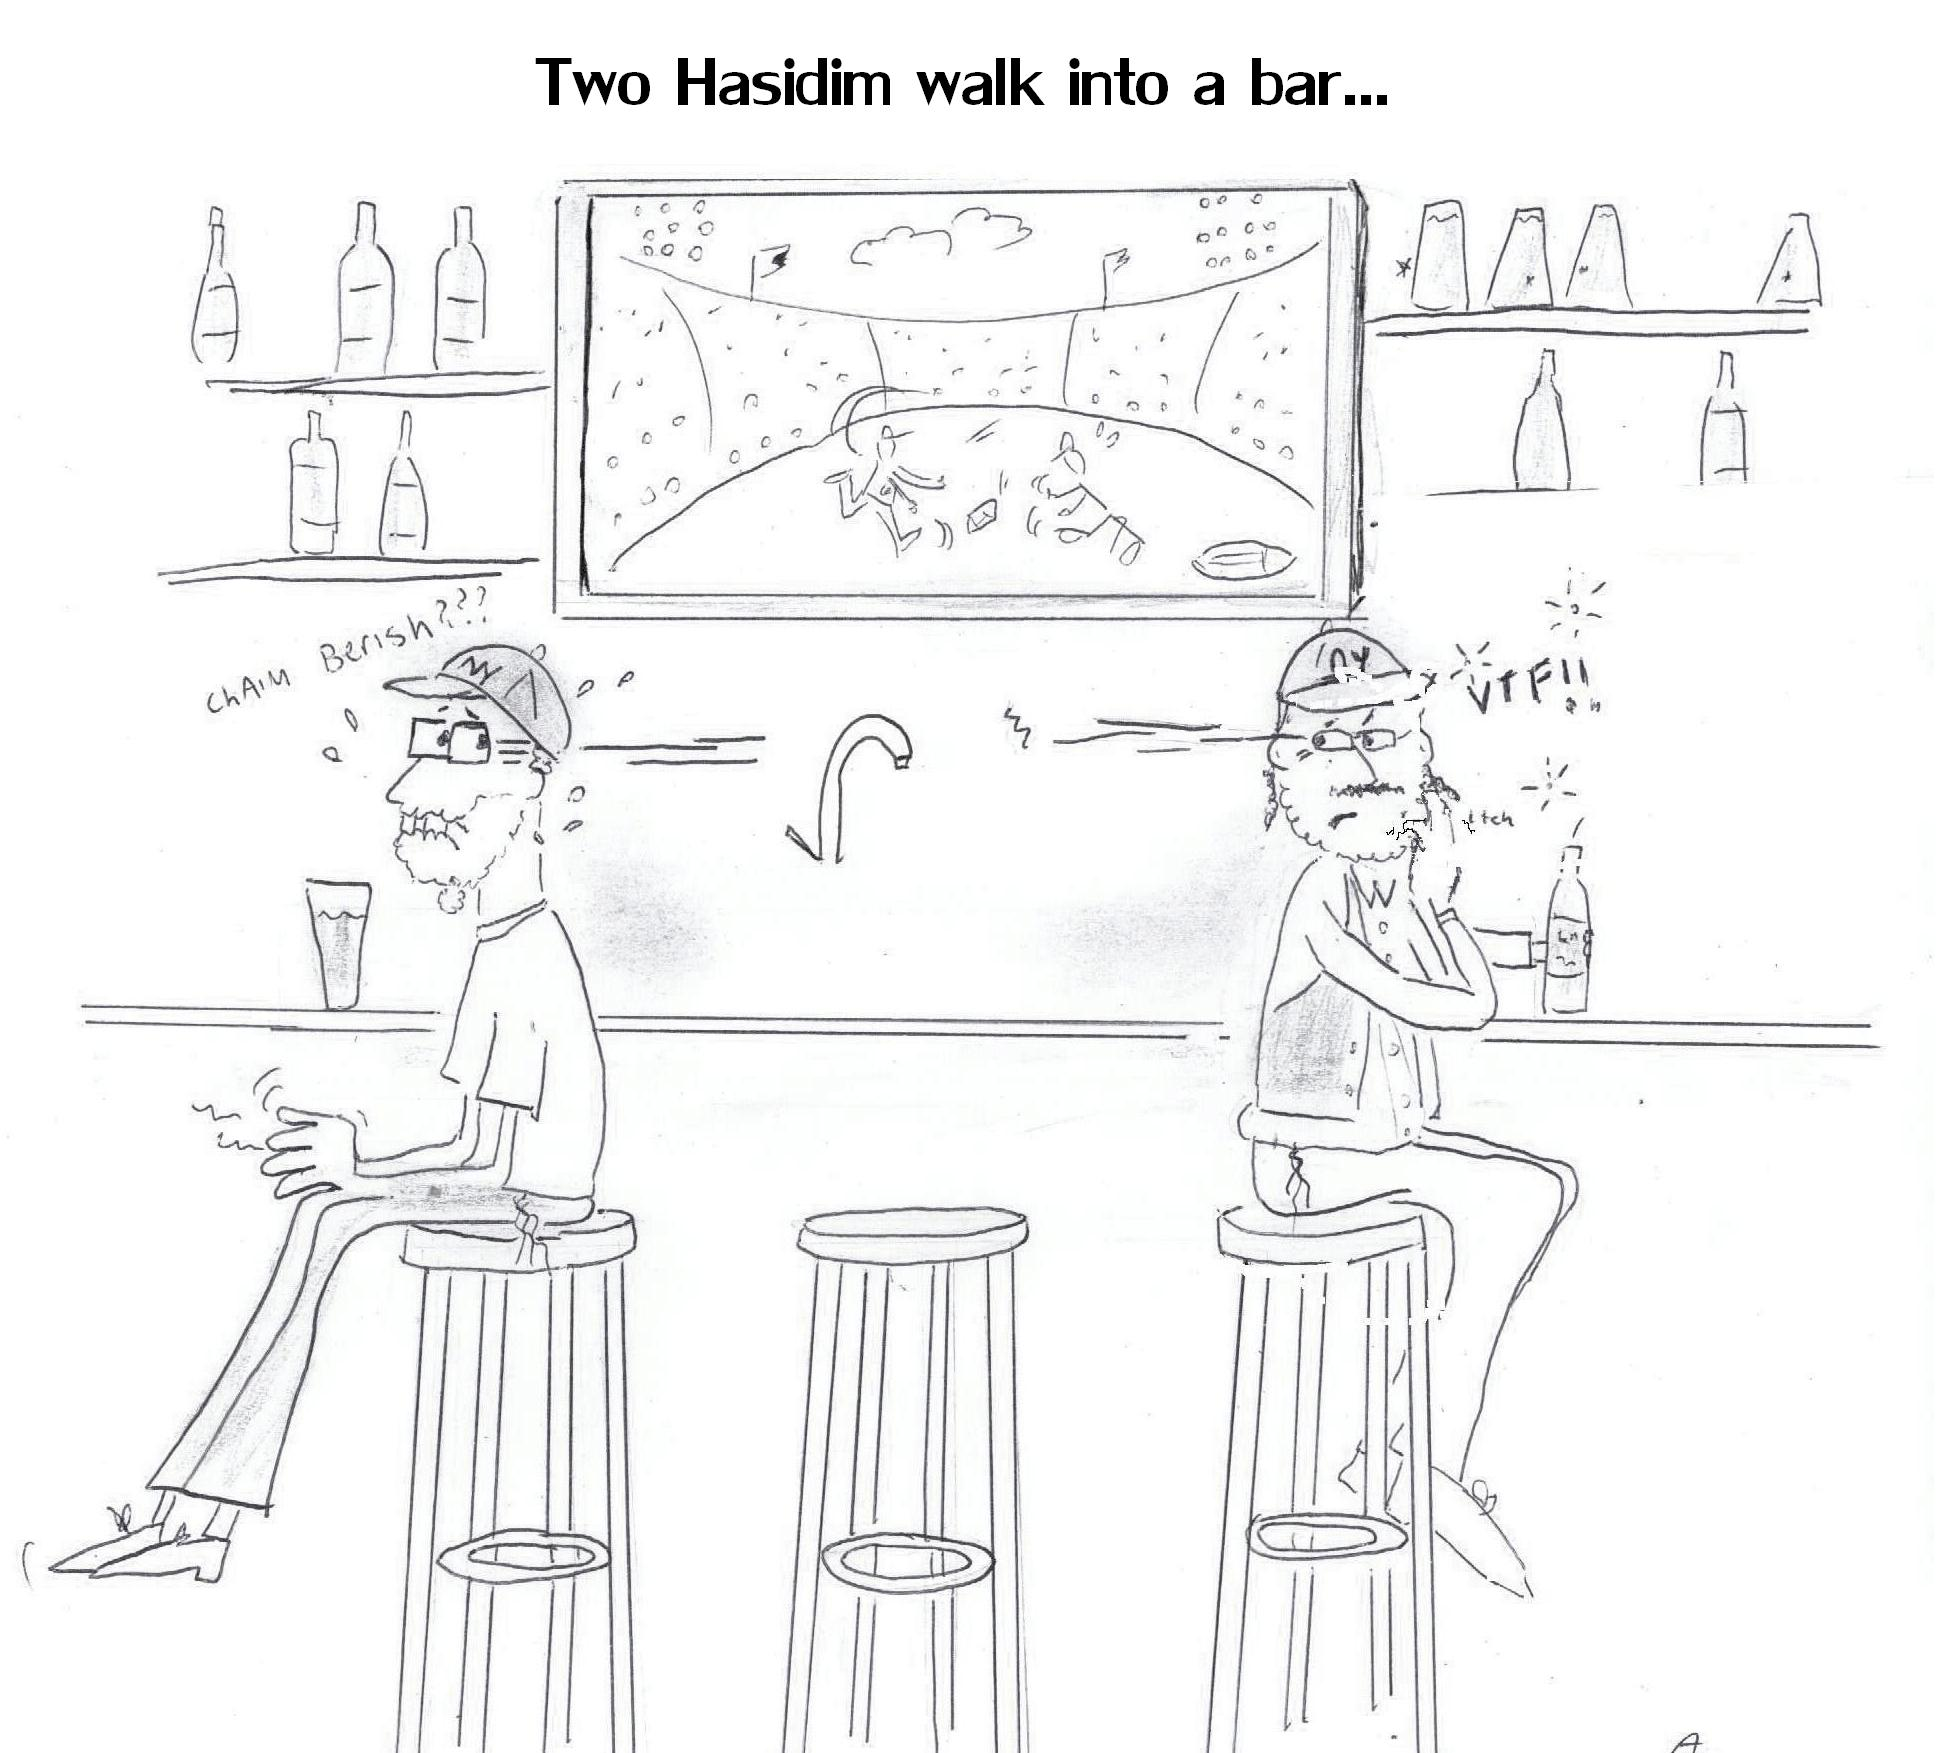 Two Hasids are in a bar to watch the superbowl, but both are afraid the other will see them